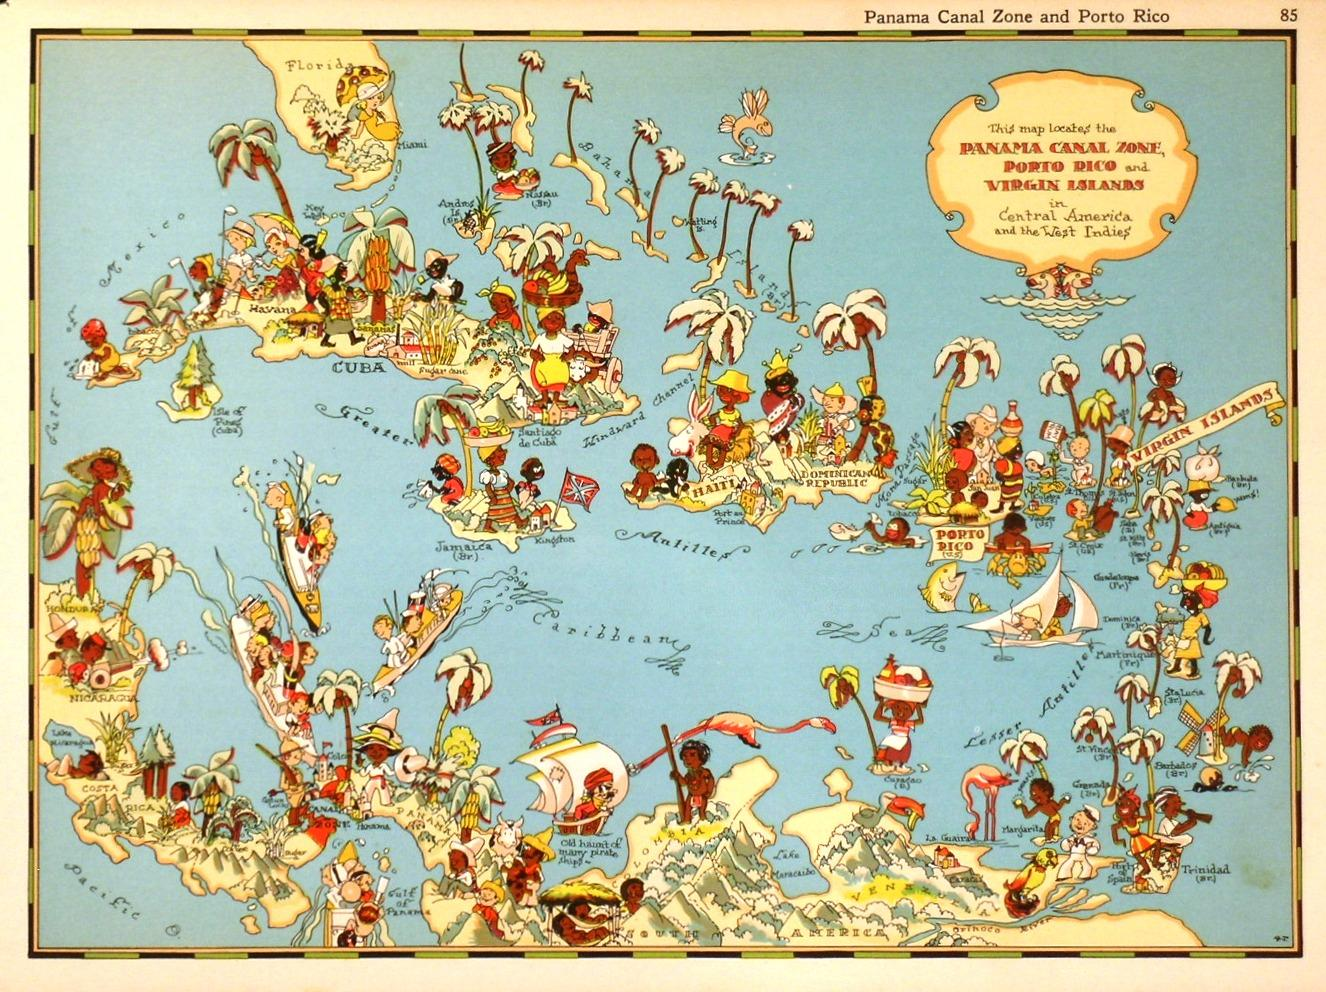 PANAMA C ZONE, PORTO RICO AND VIRGIN ISLANDS. . Curious map of ... on